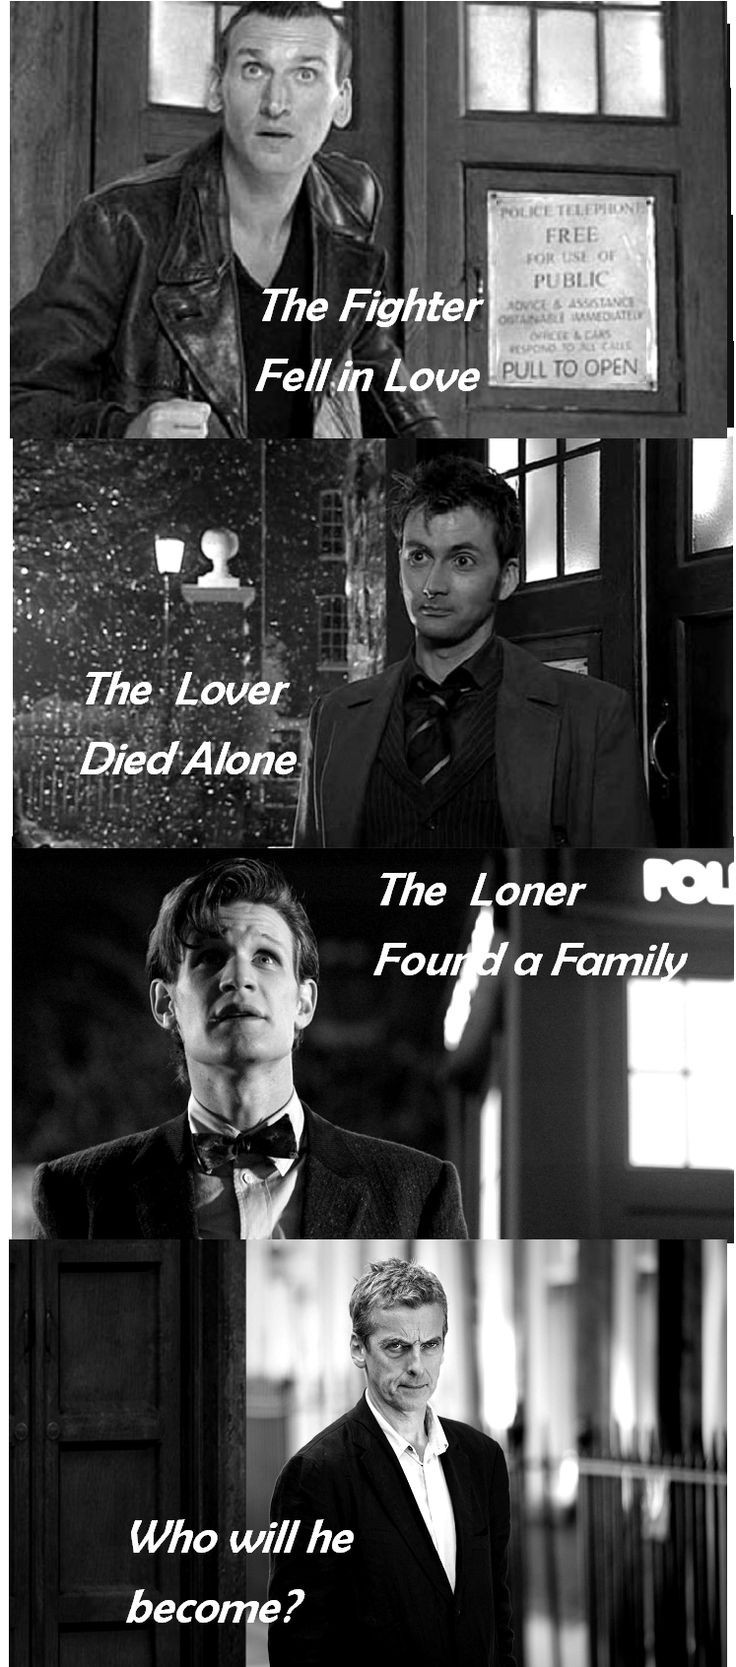 Doctor Who: The Four Doctors. Nine: Eccleston, Ten: Tennant, Eleven: Smith, Twelve: Capaldi.